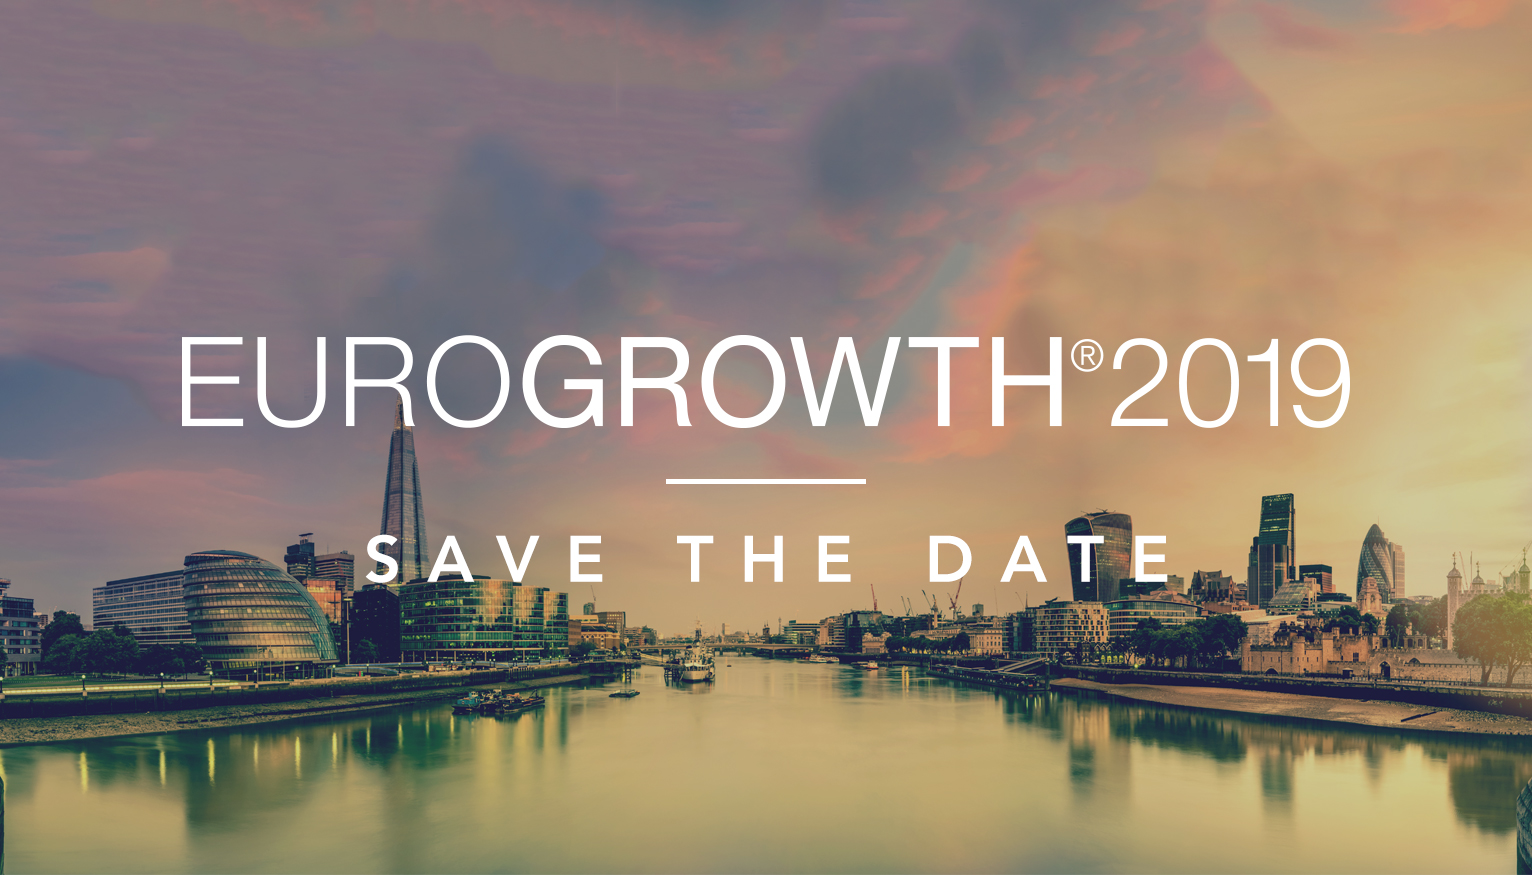 EuroGrowth 2019 | Save the Date